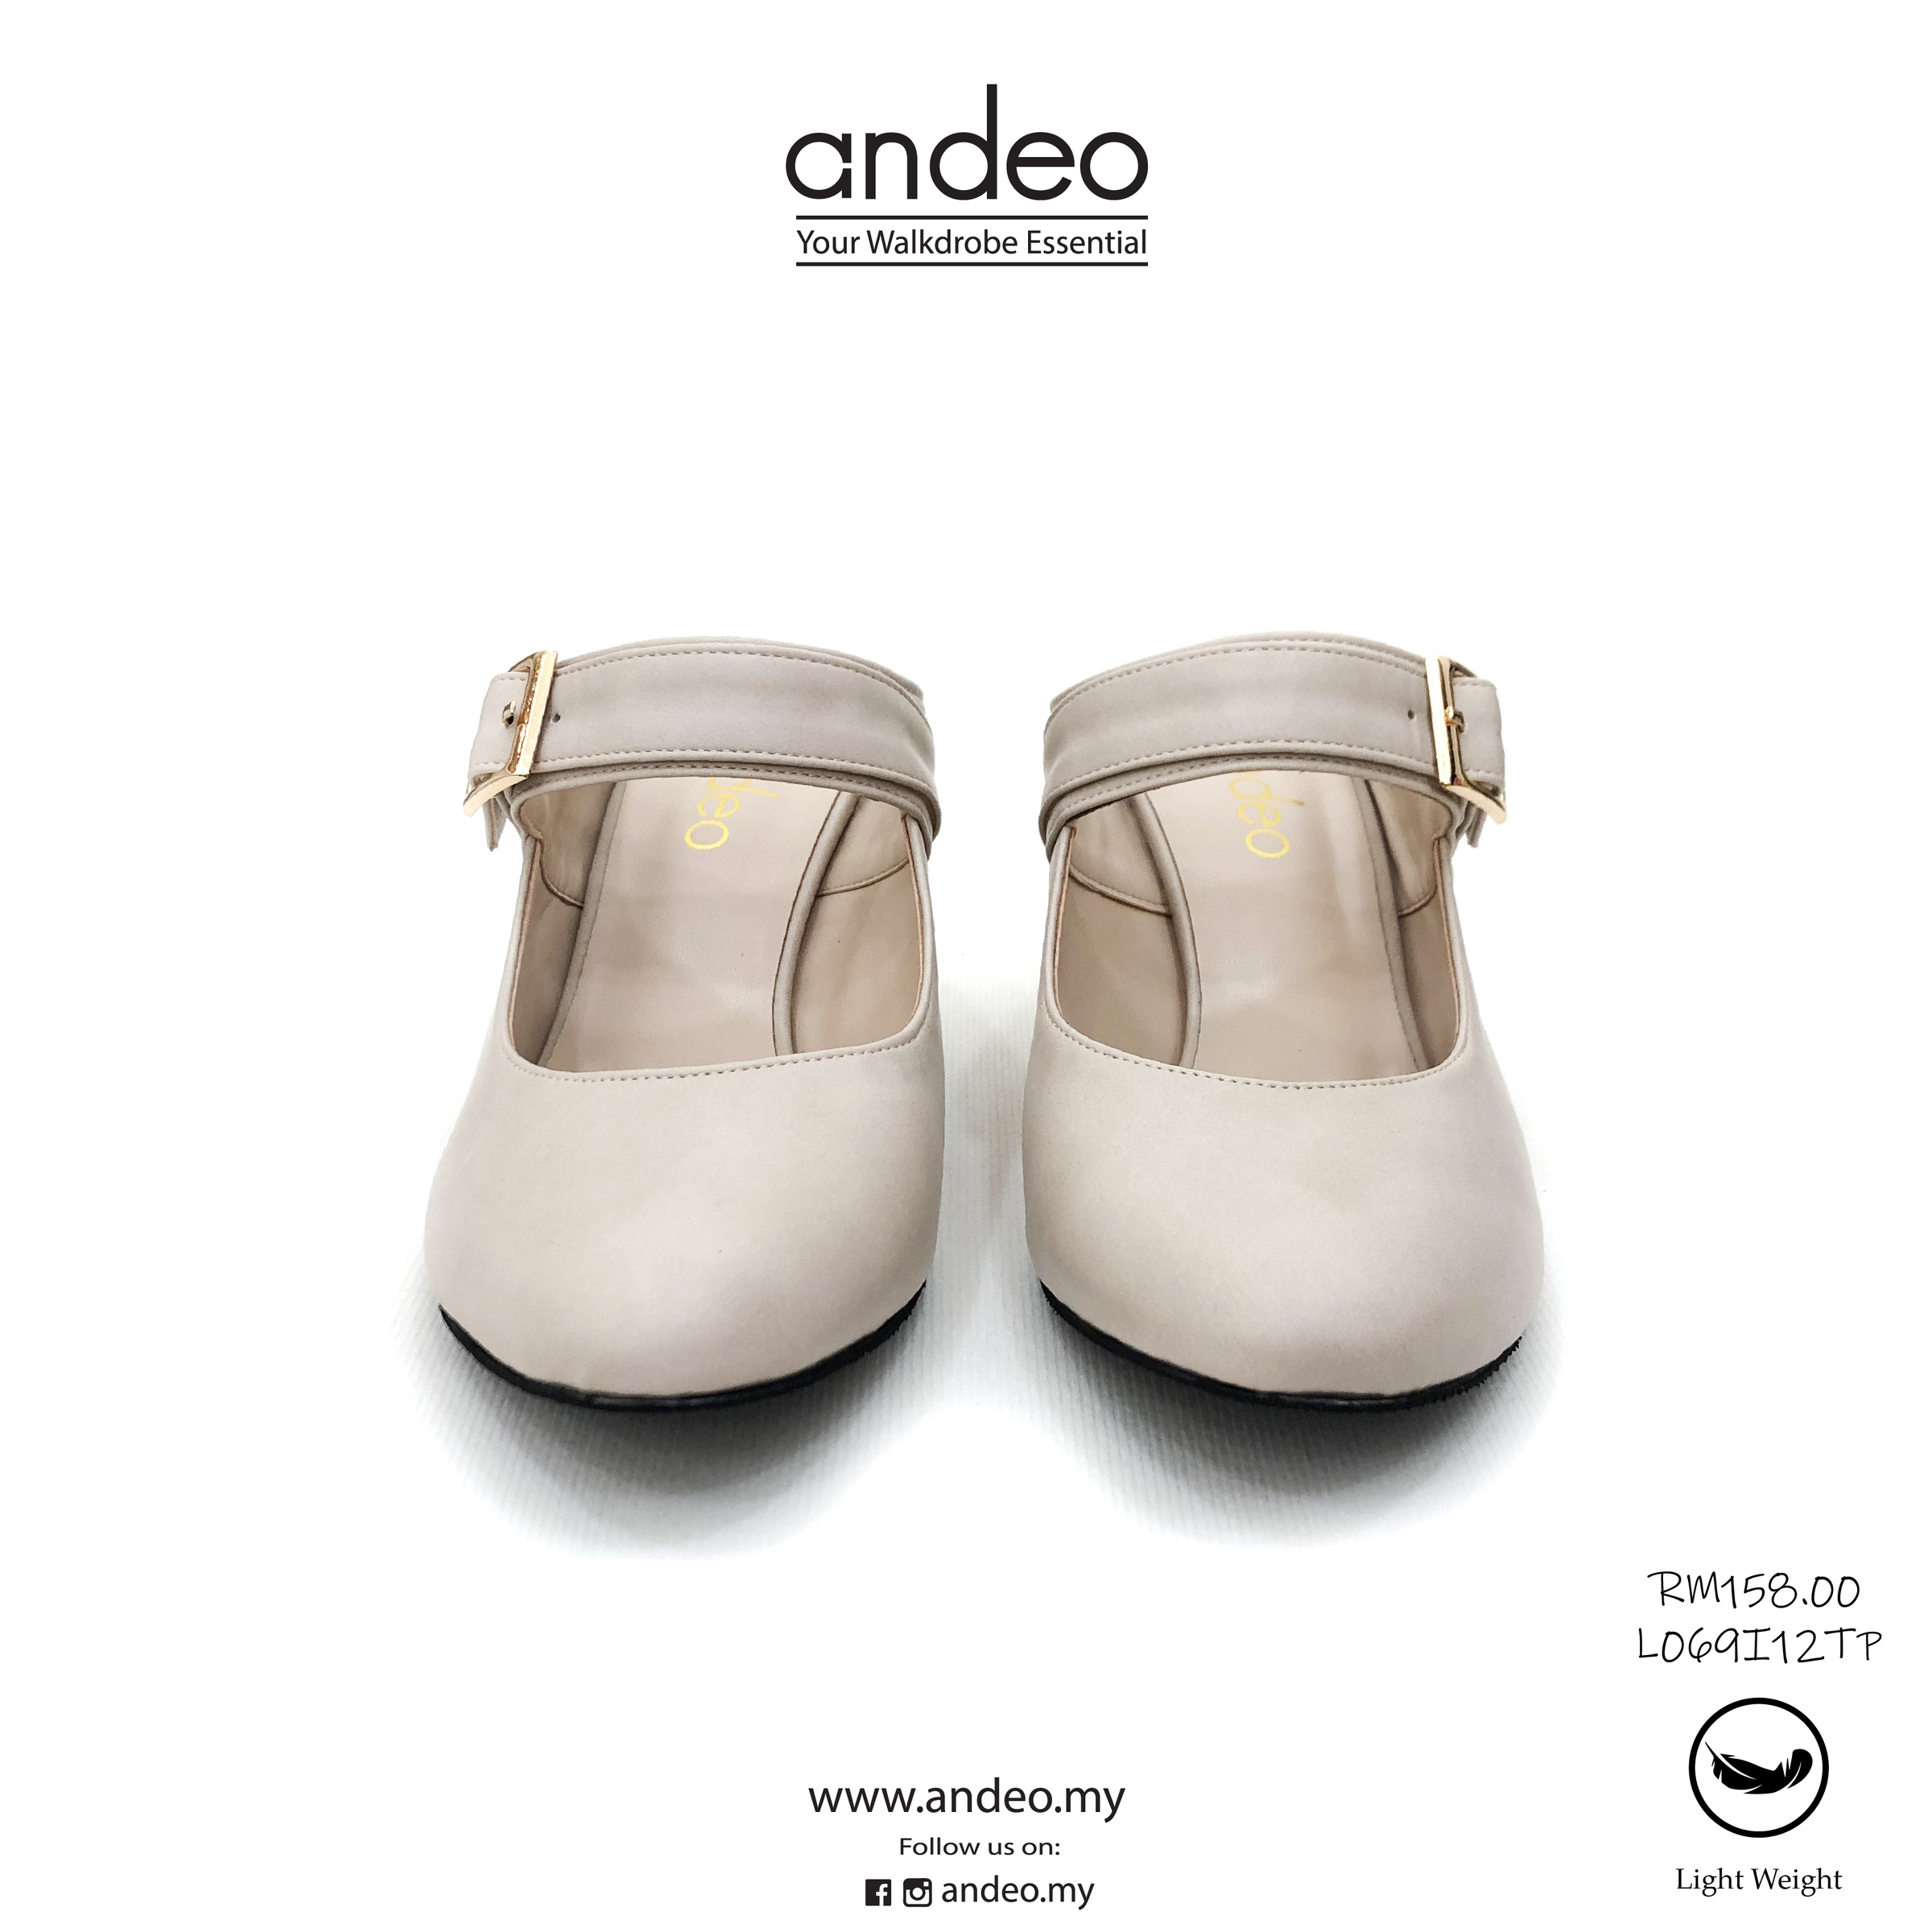 ANDEO FB PRODUCT L069I12-12.png